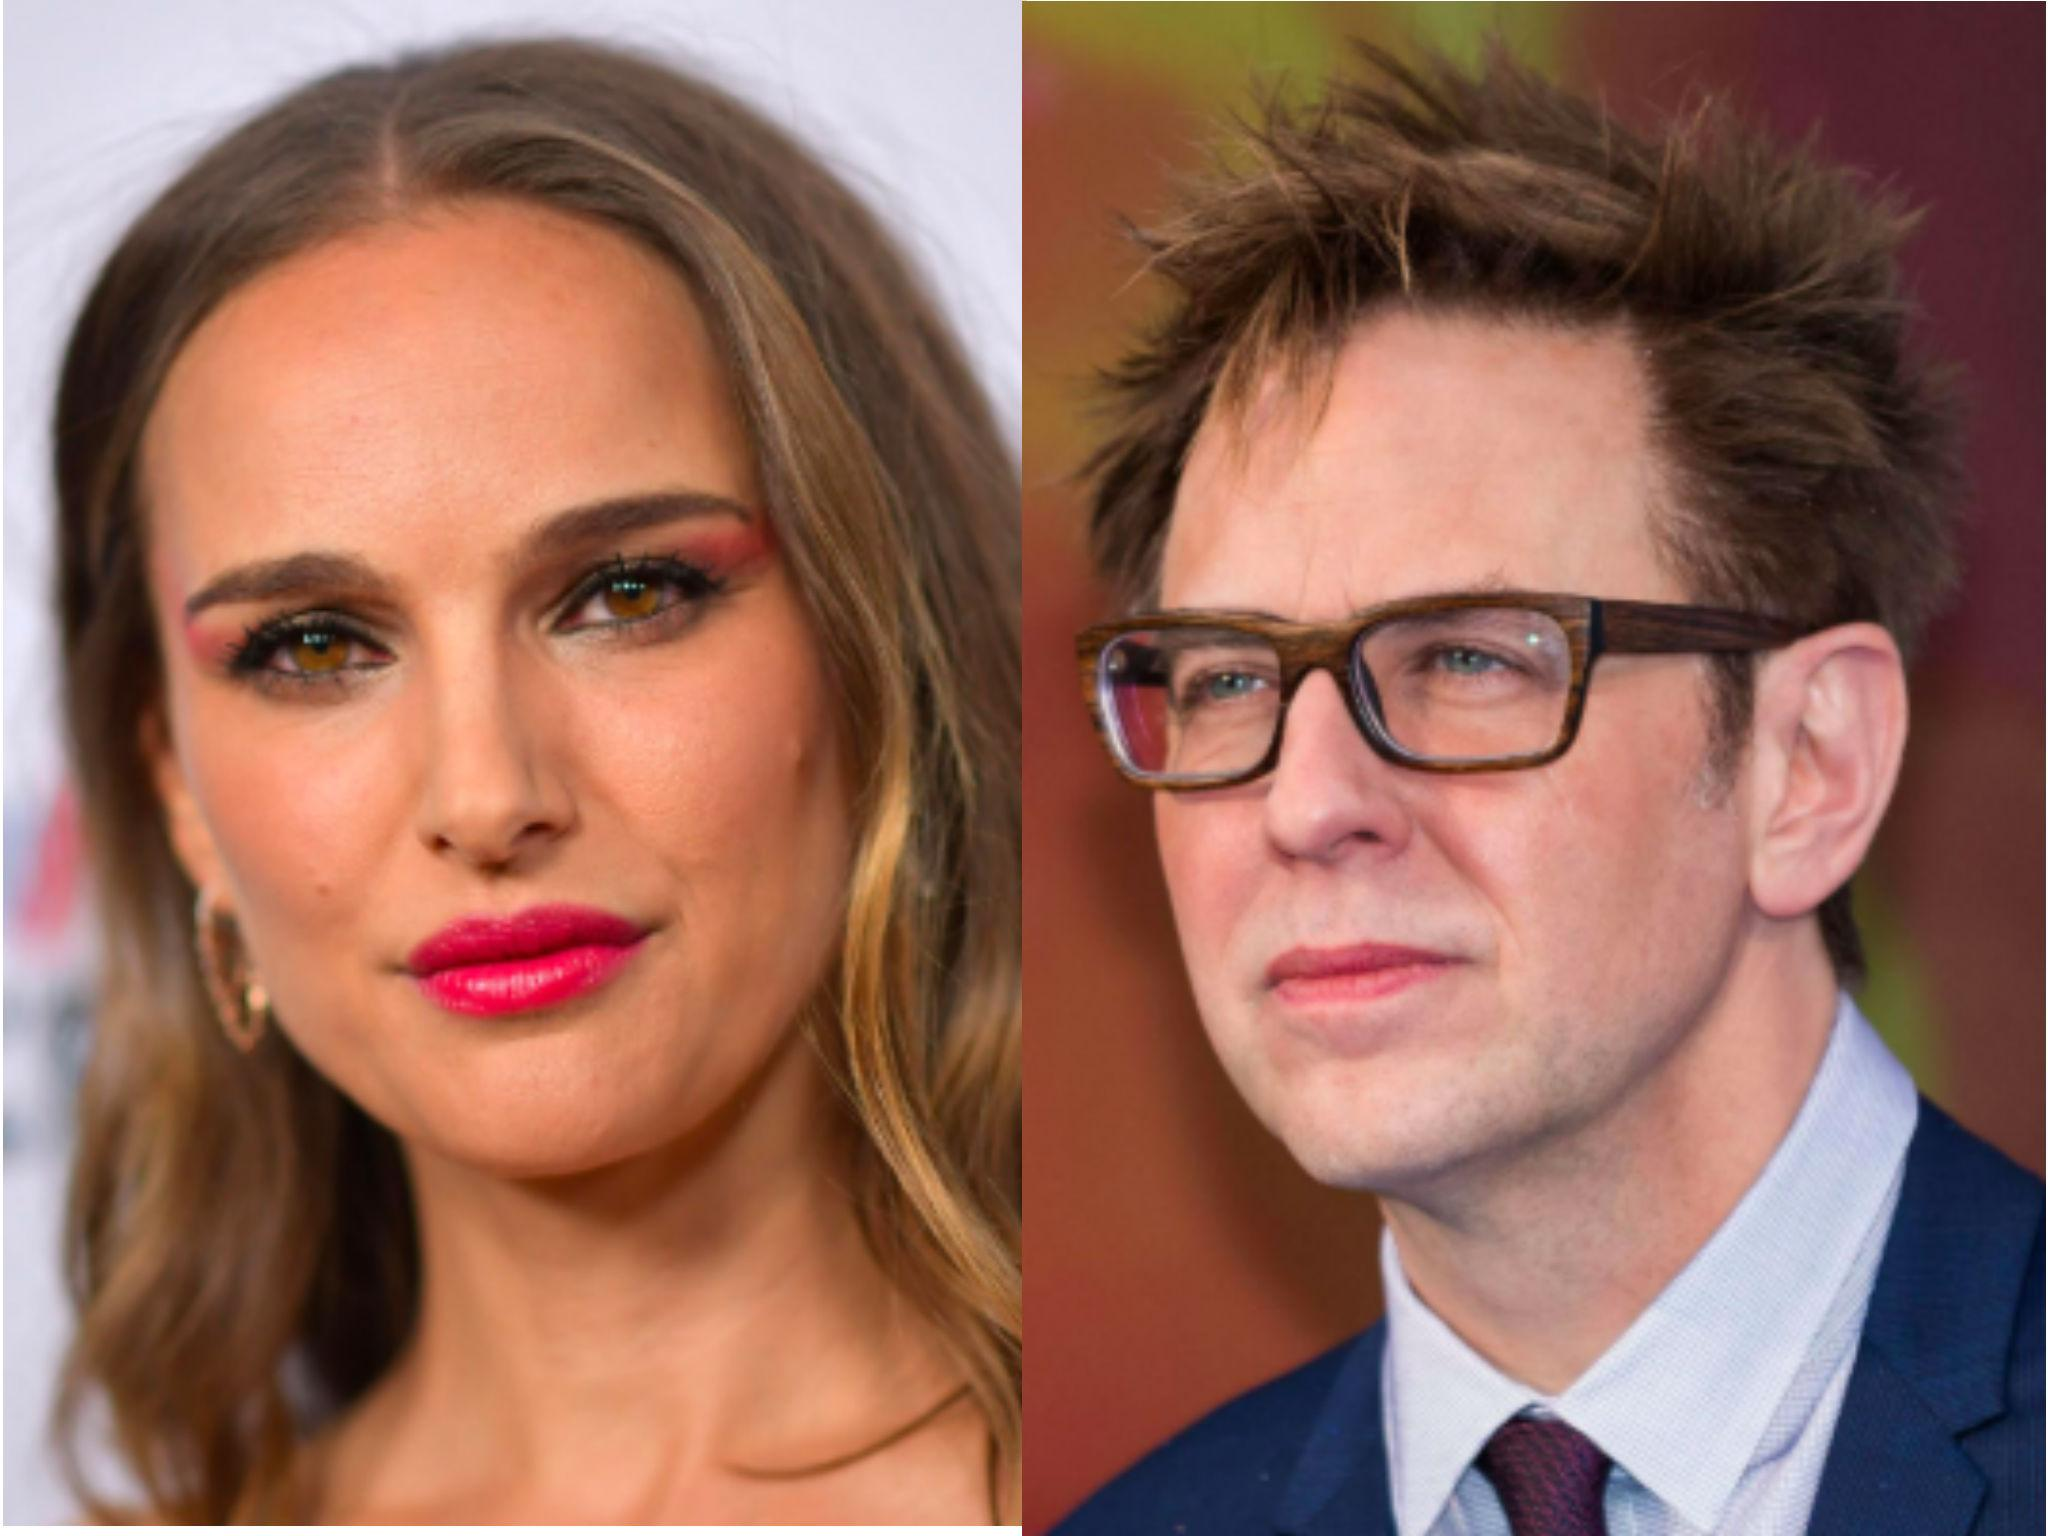 James Gunn and Natalie Portman defend Marvel films after Francis Ford Coppola calls them 'despicable'